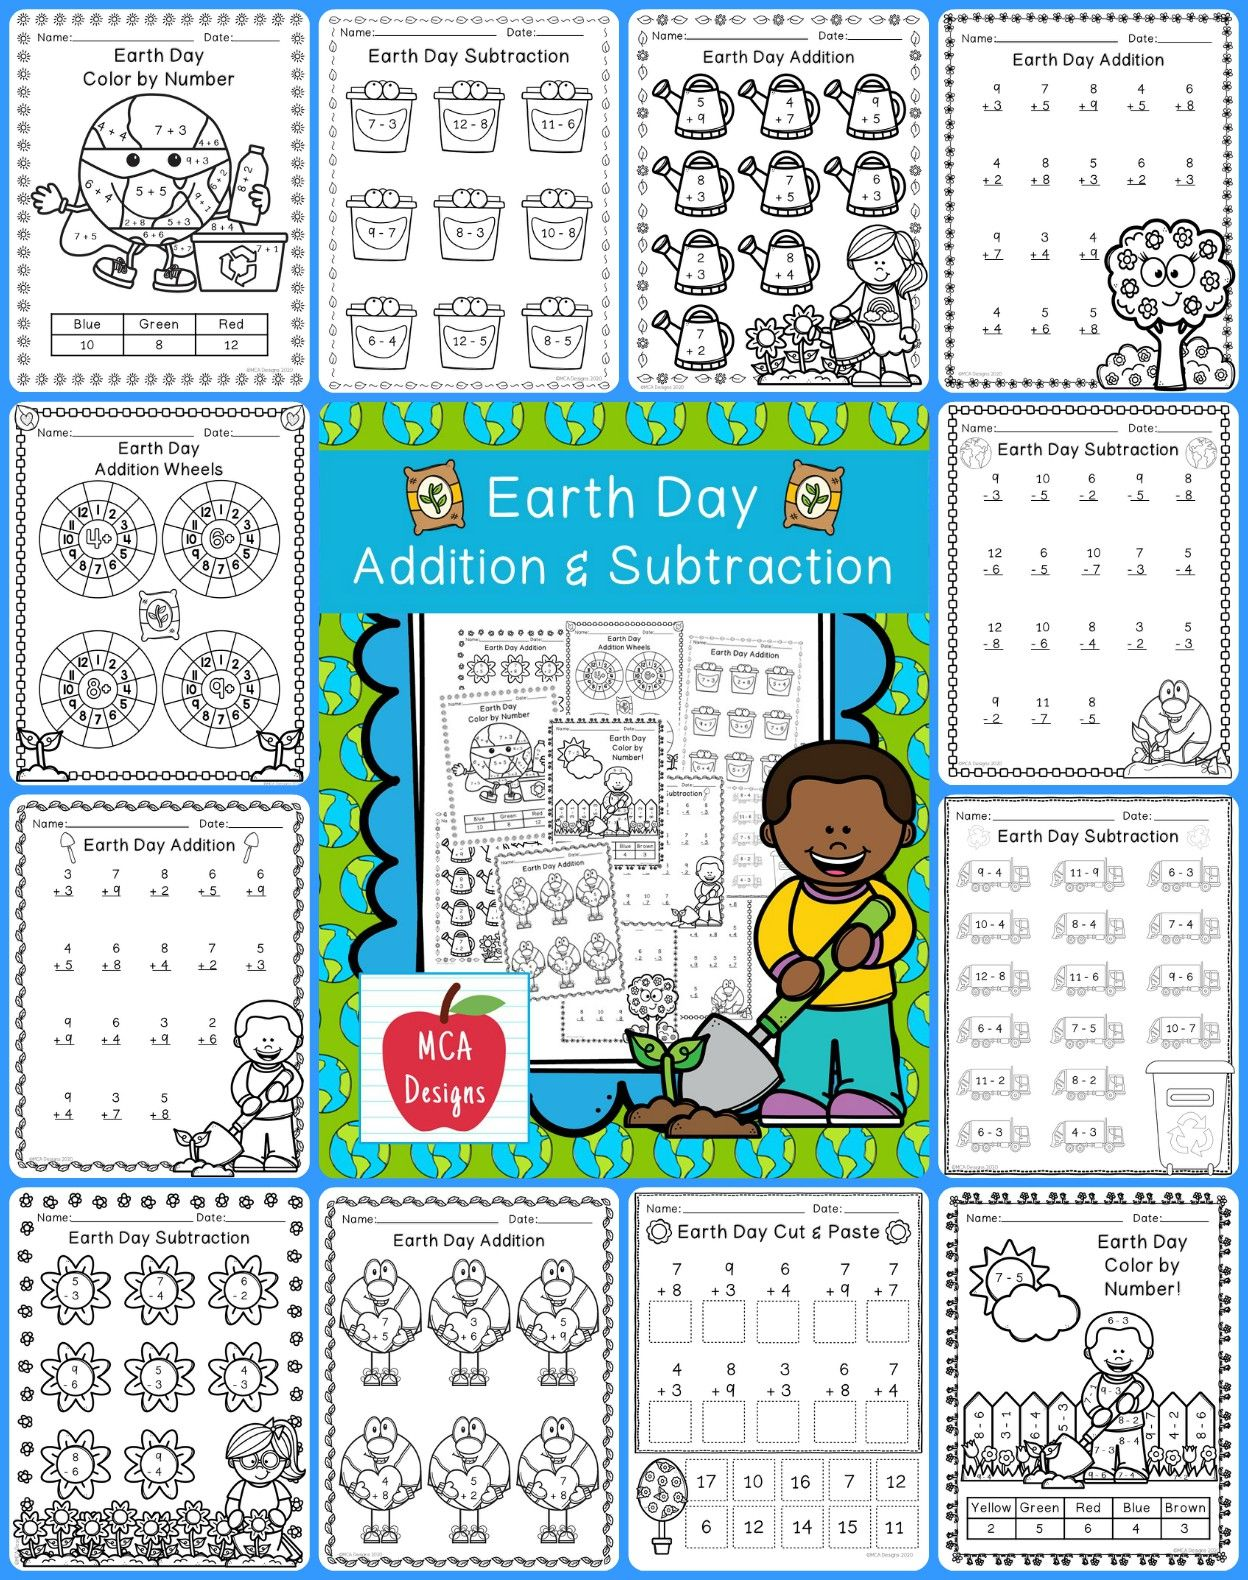 This Product Features Various Worksheets And Activities To